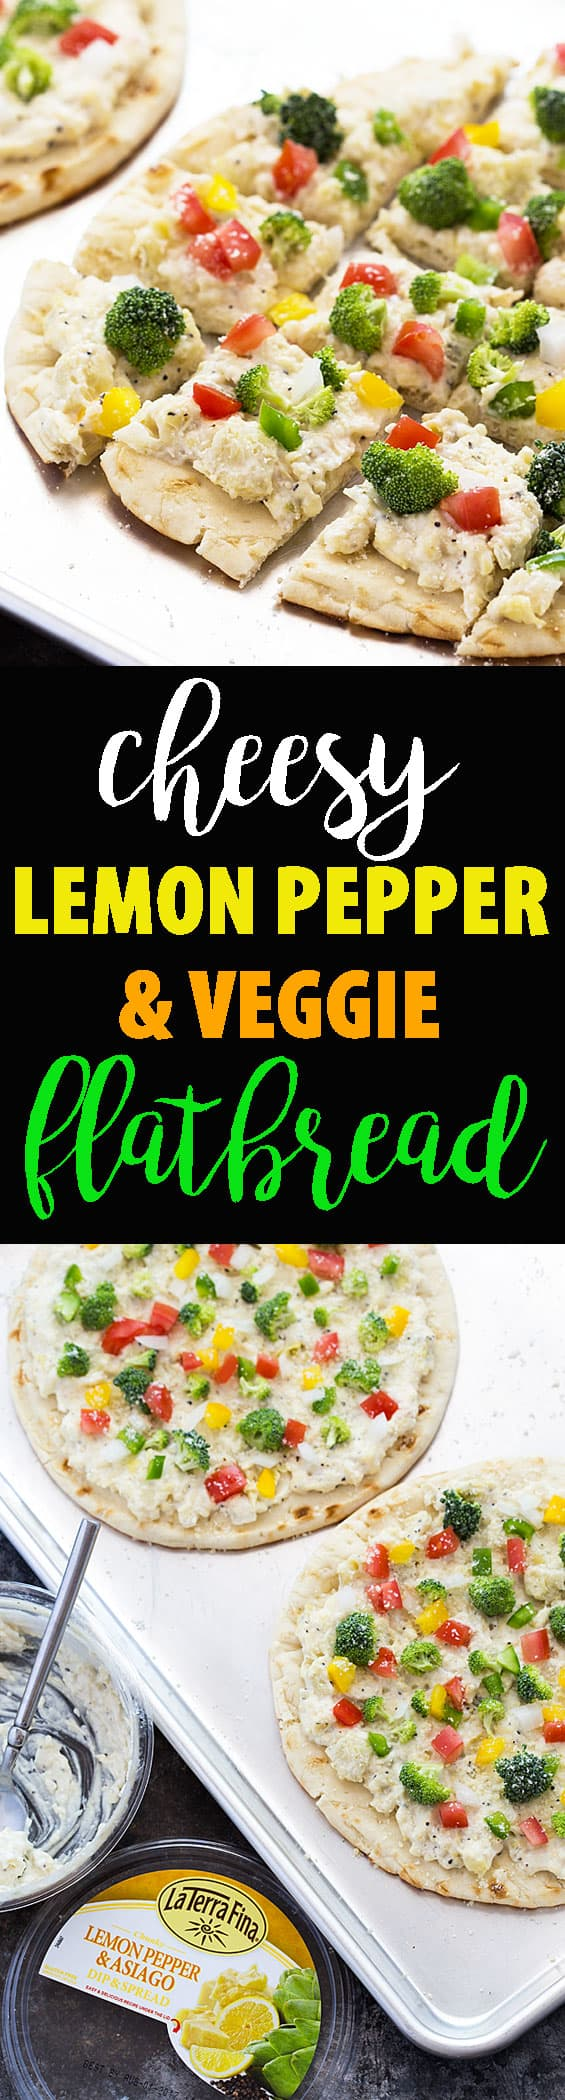 A two image vertical collage of lemon pepper and veggie flatbread with overlay text.